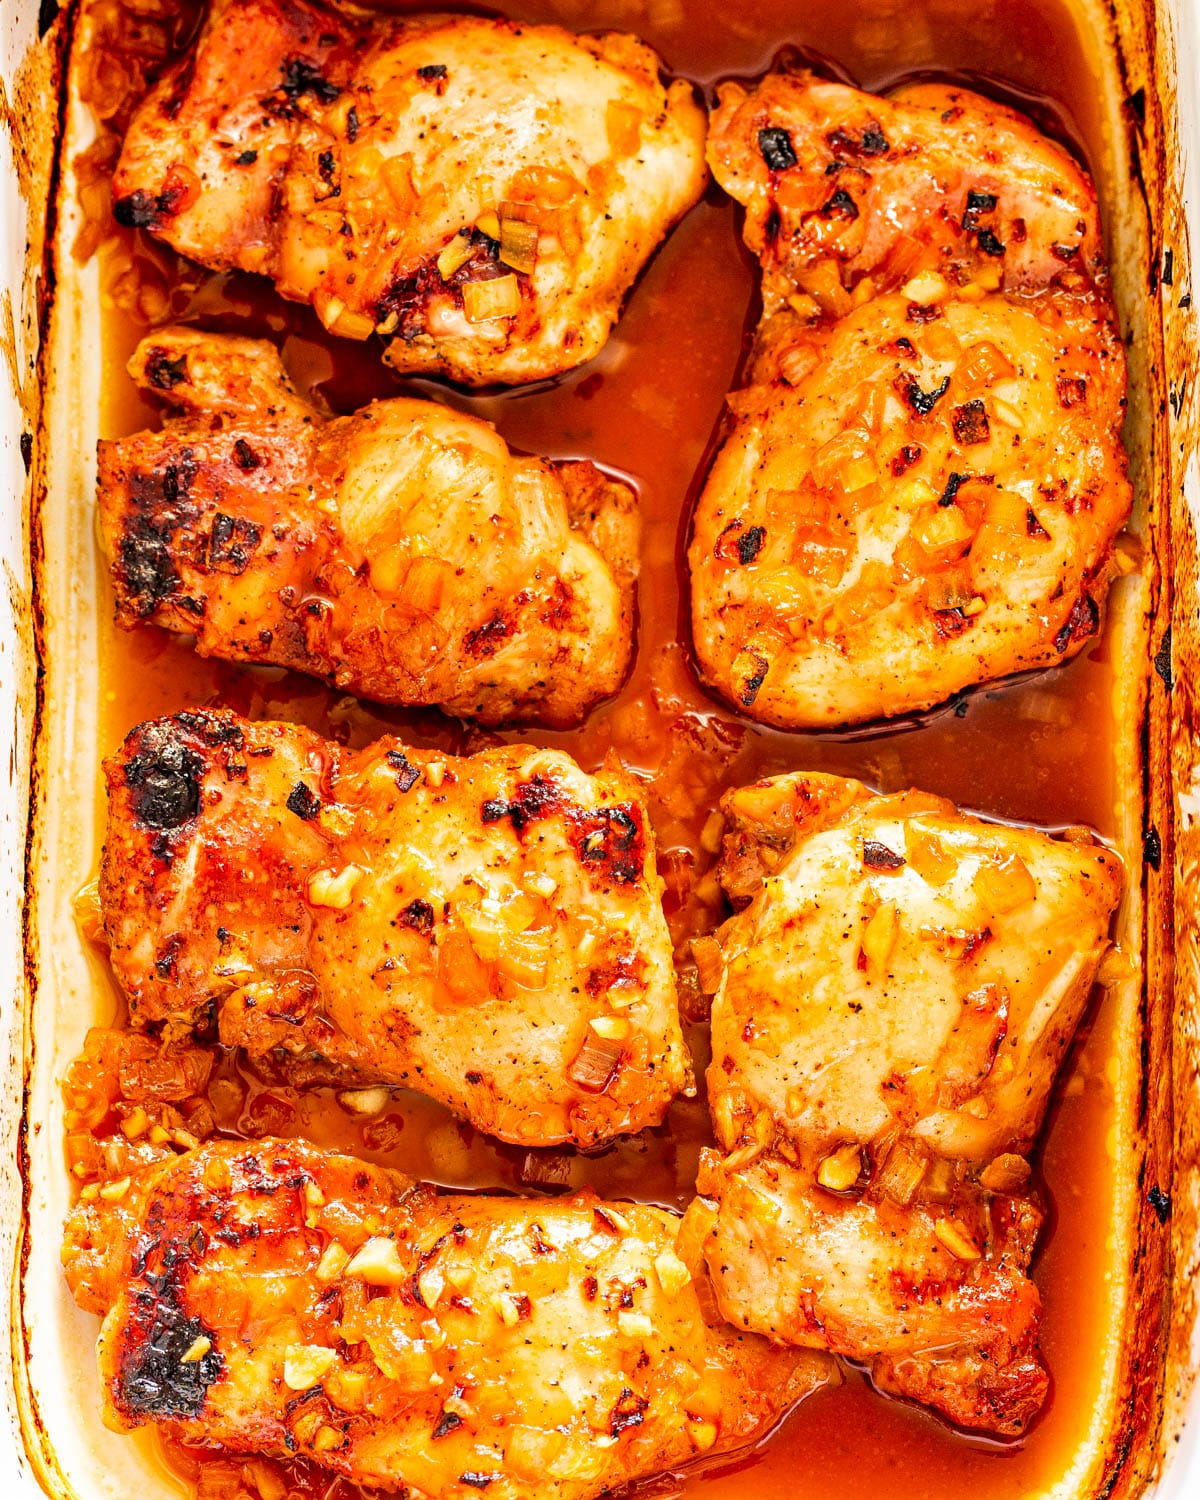 Spicy Honey Garlic Chicken Thighs in a casserole dish right out of the oven